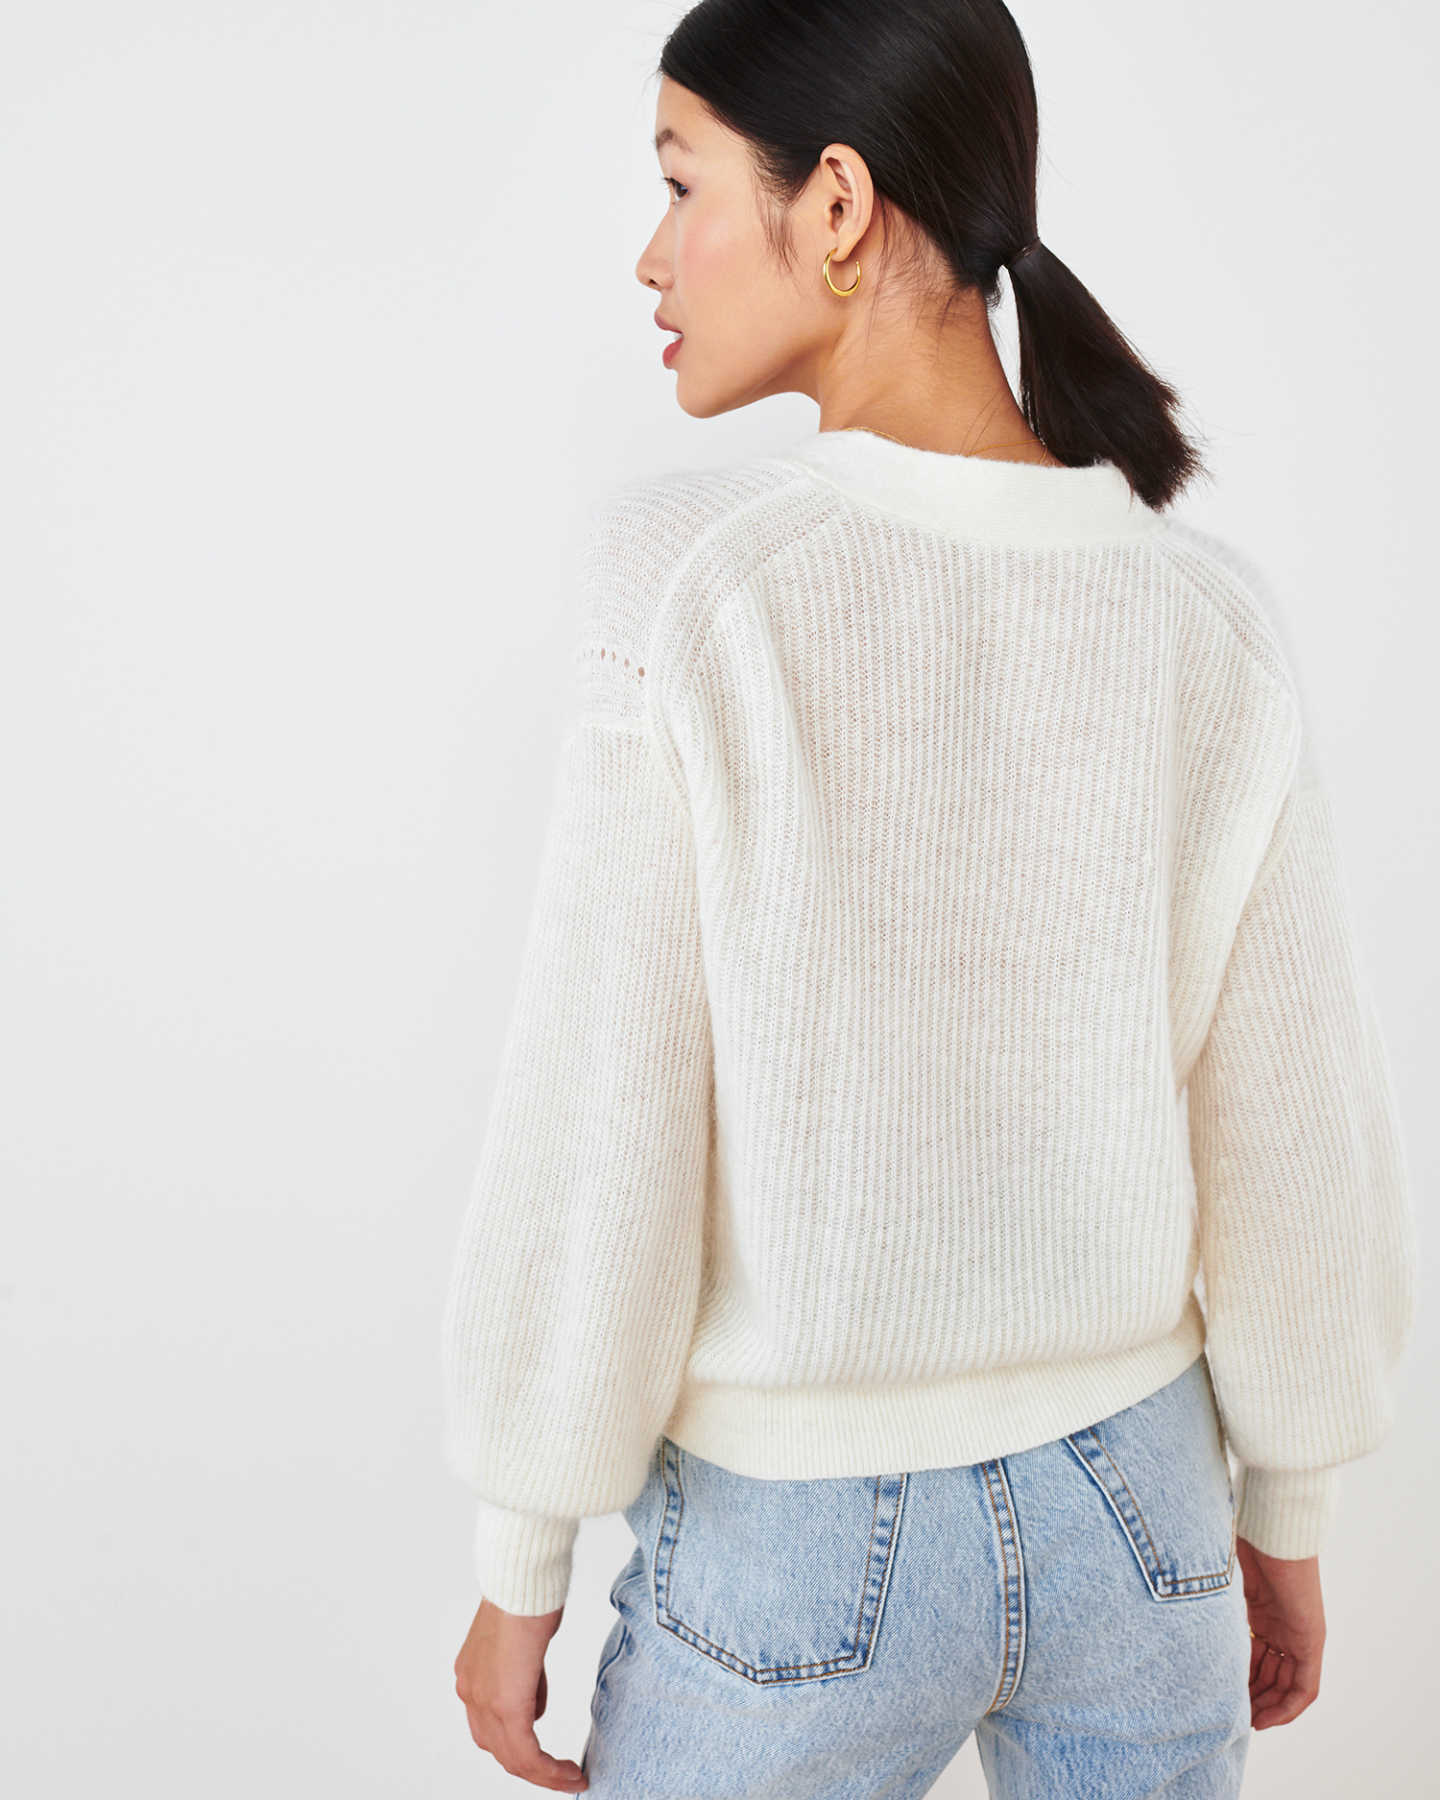 Superfine Alpaca Cropped Cardigan  - undefined - 4